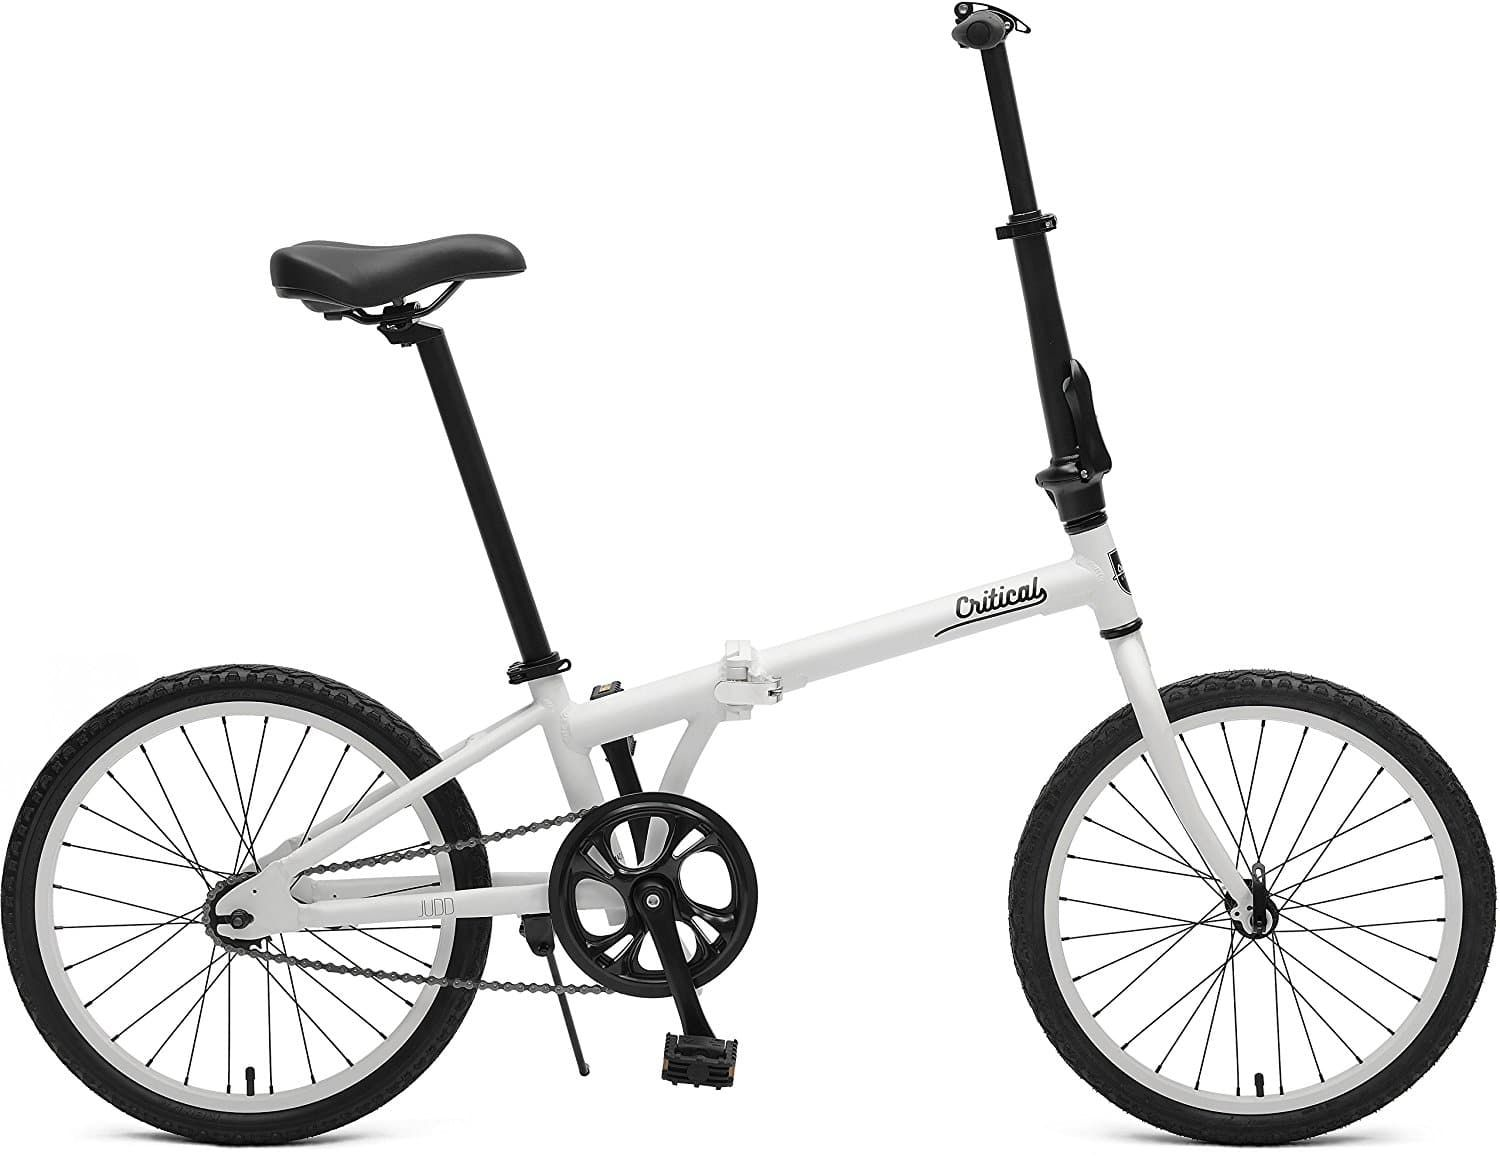 Top 8 Best Lightweight Folding Bikes In 2020 Reviews